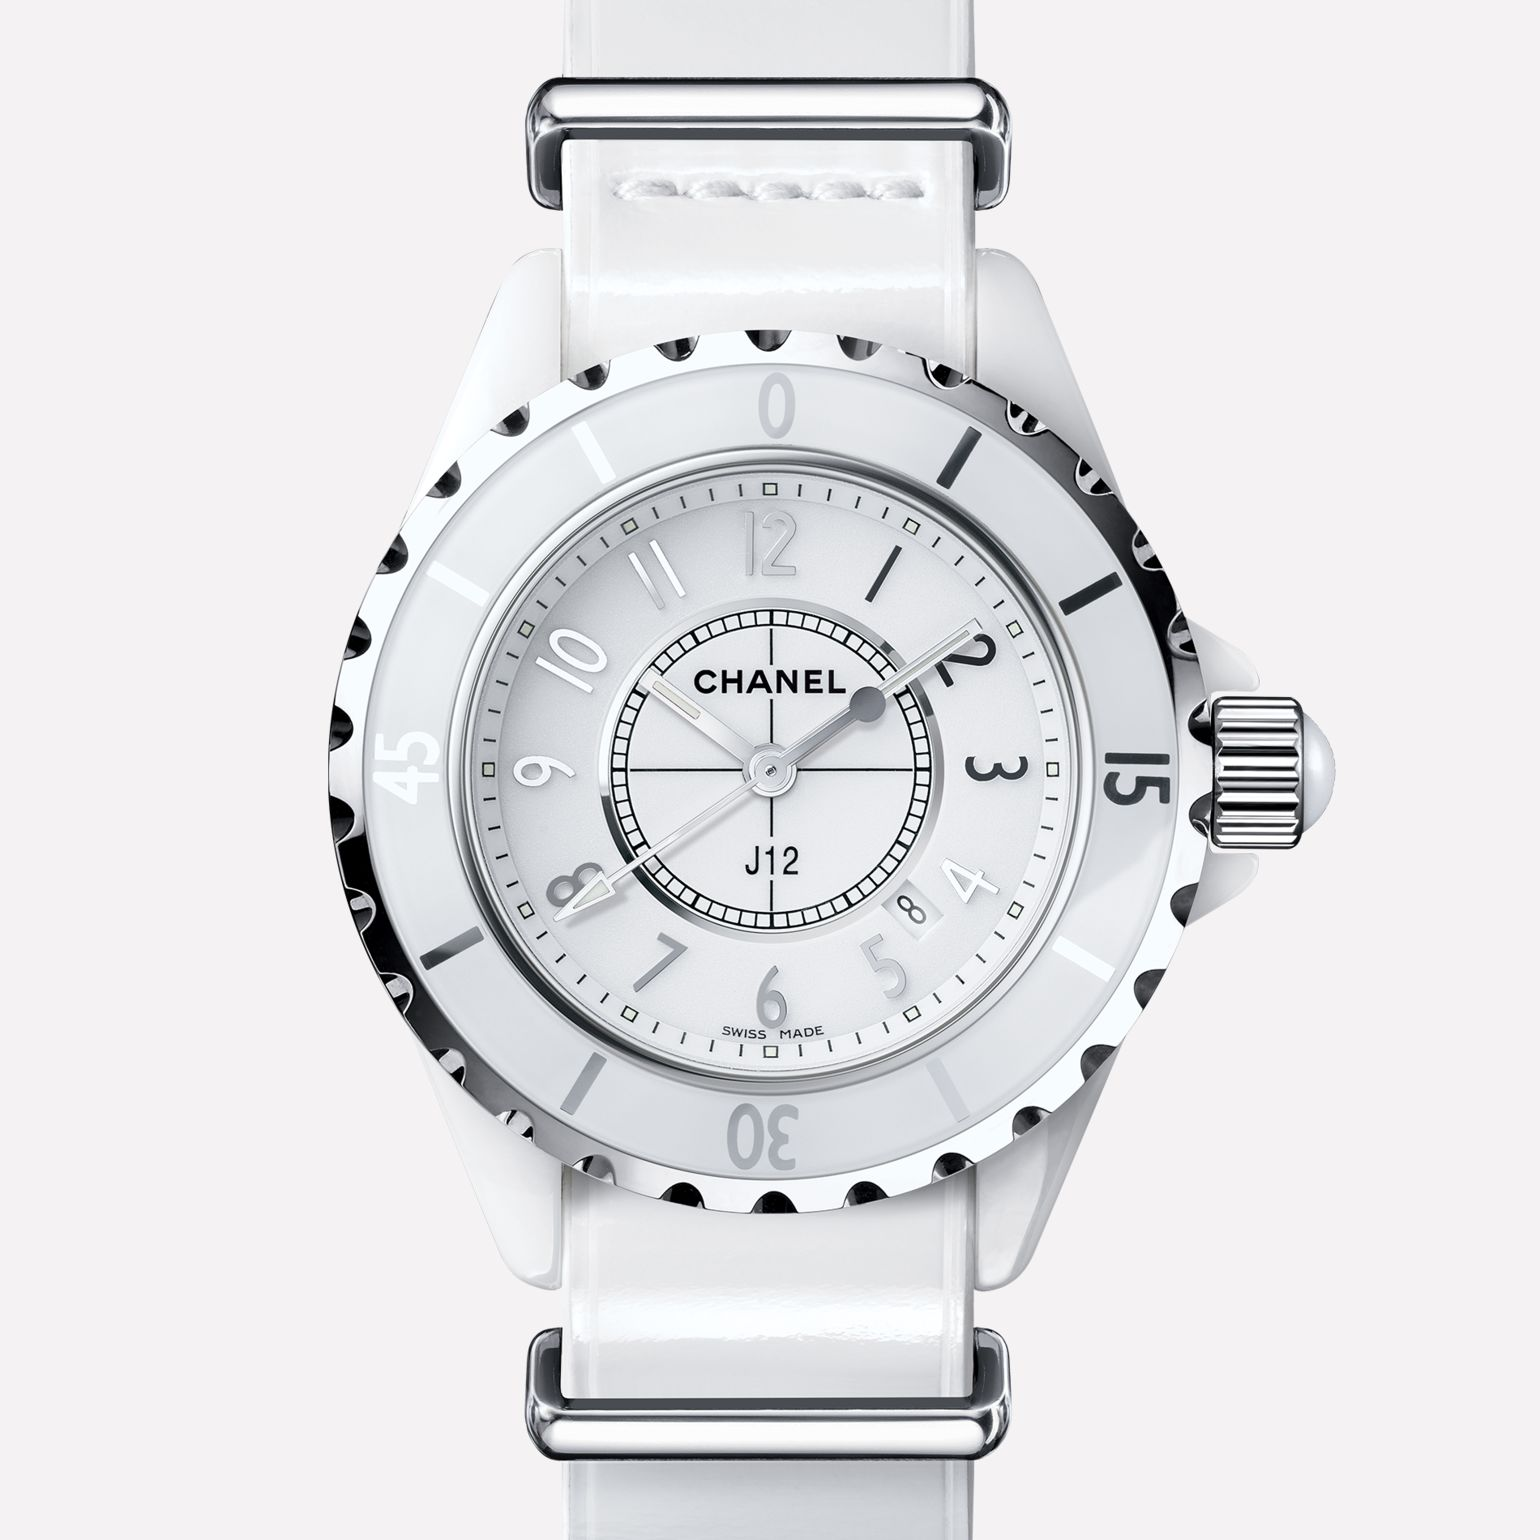 J12-G10 Gloss Watch White highly-resistant ceramic and steel, patent calfskin and nylon straps